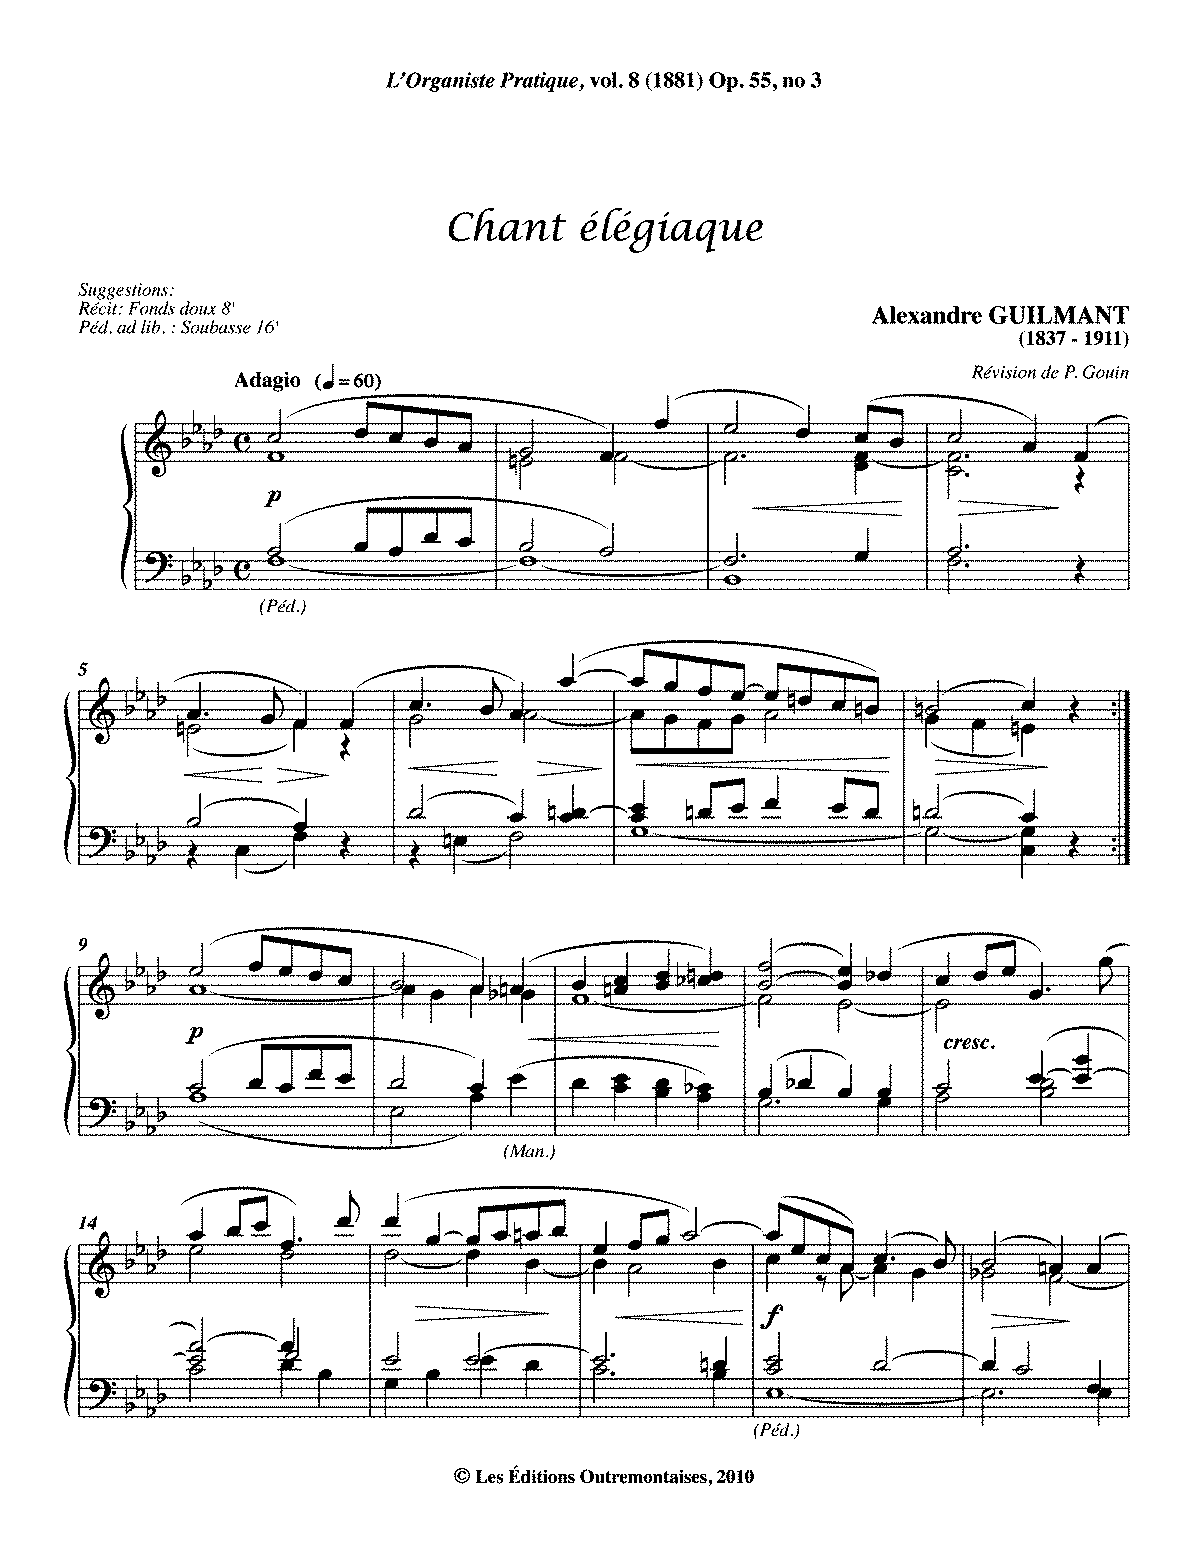 WIMA.89eb-Guilmant Op.55 no.3 Chant elegiaque.pdf